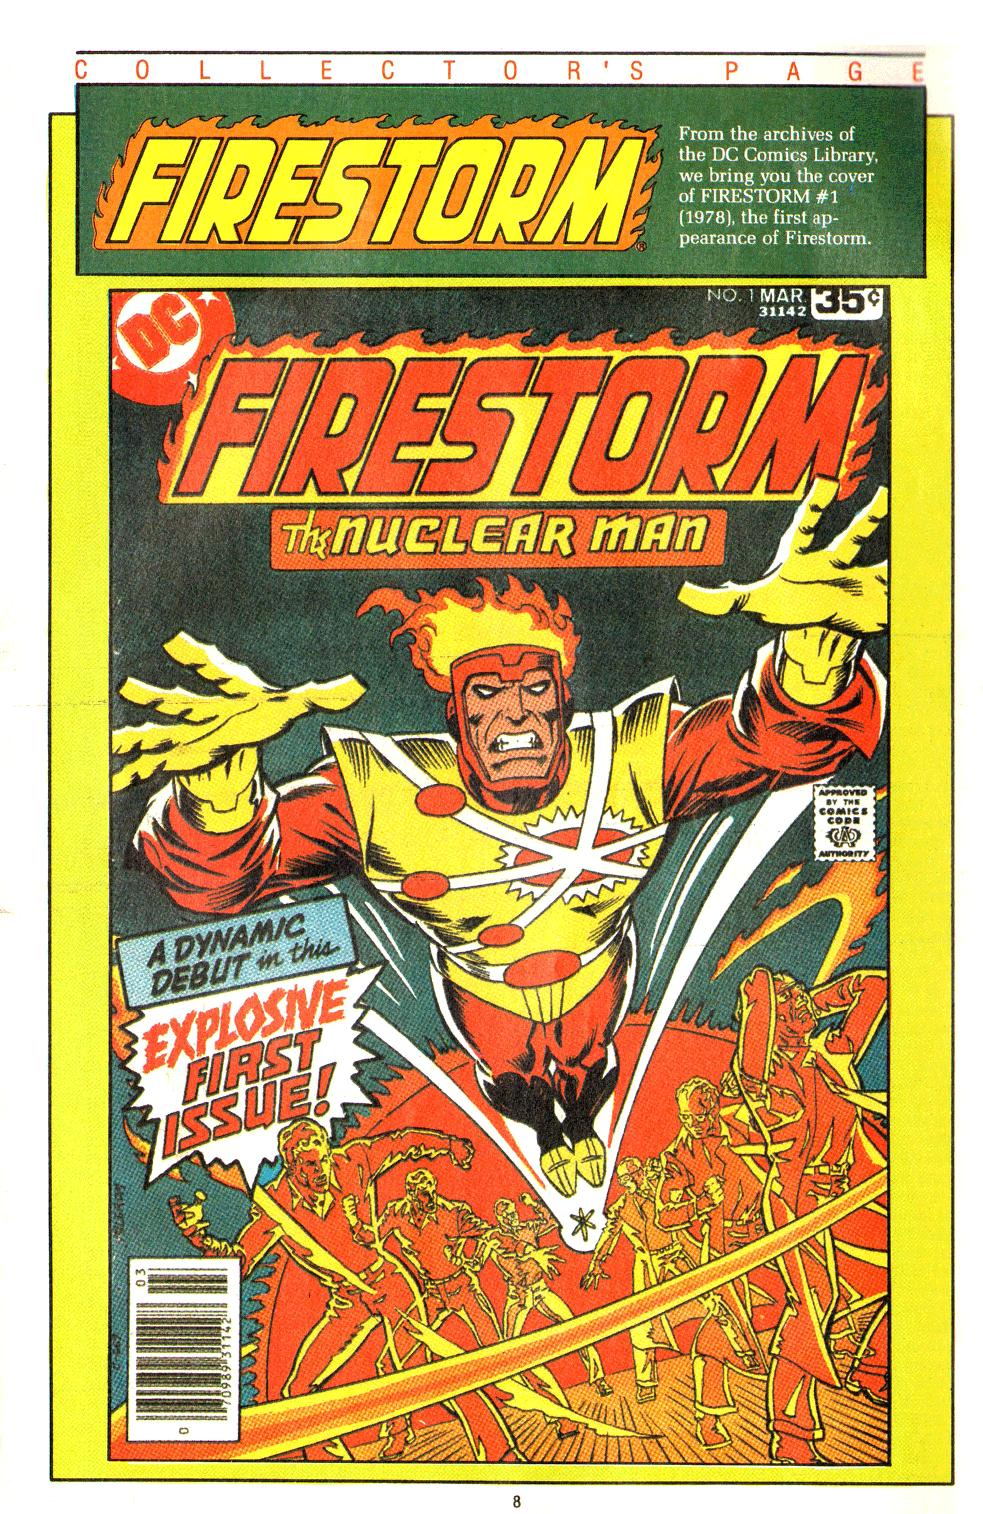 Direct Currents #16 back cover featuring Firestorm by Al Milgrom